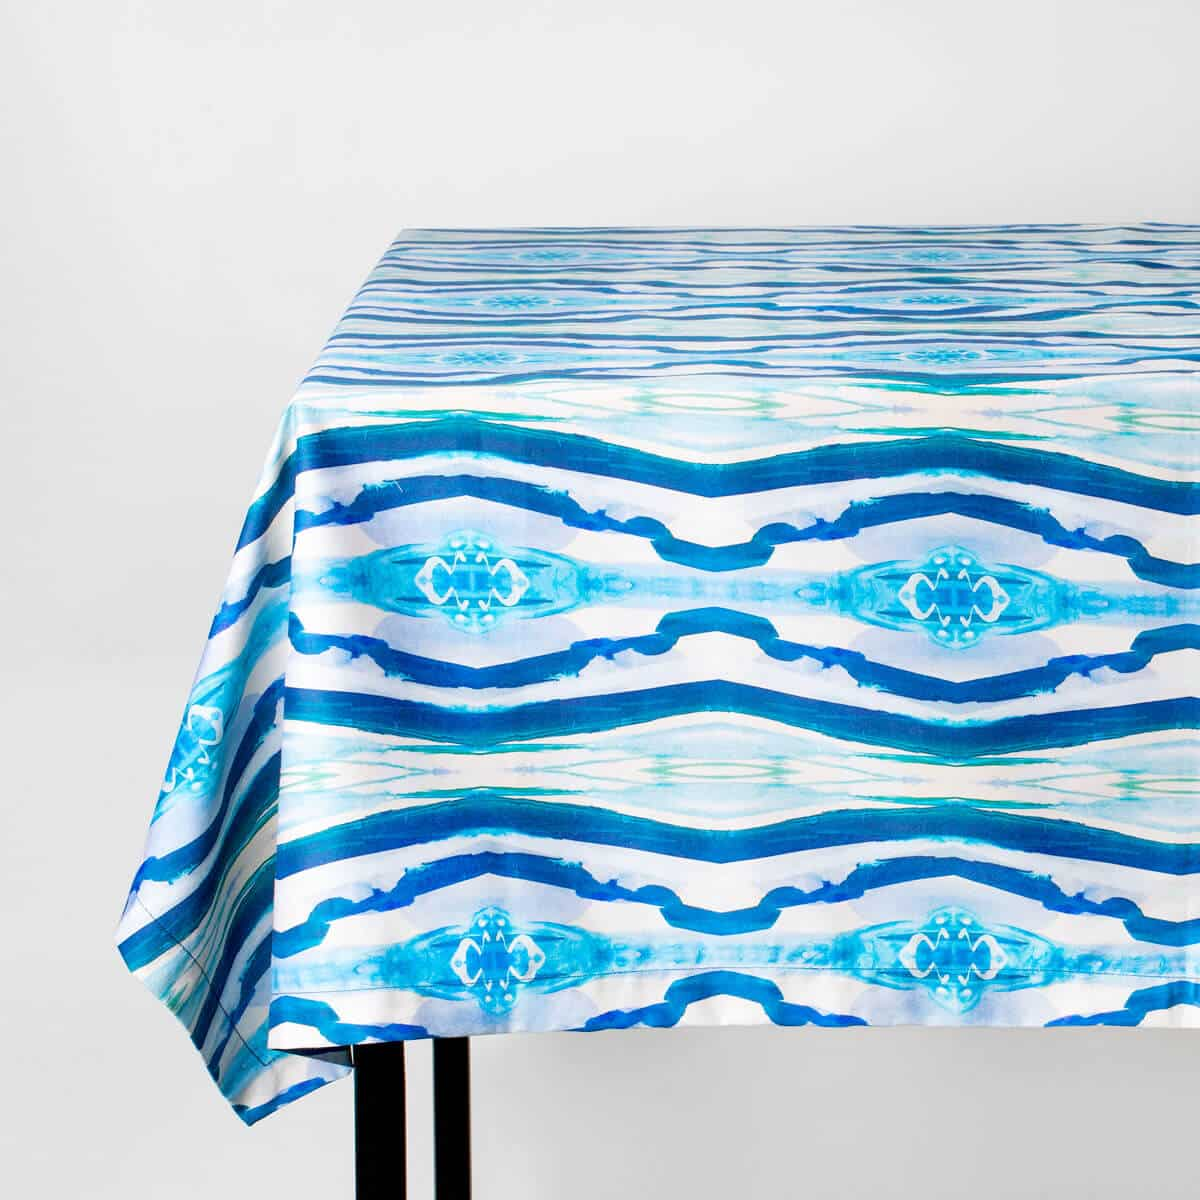 Luxury organic turquoise mirrored diamond tablecloth draped over a table